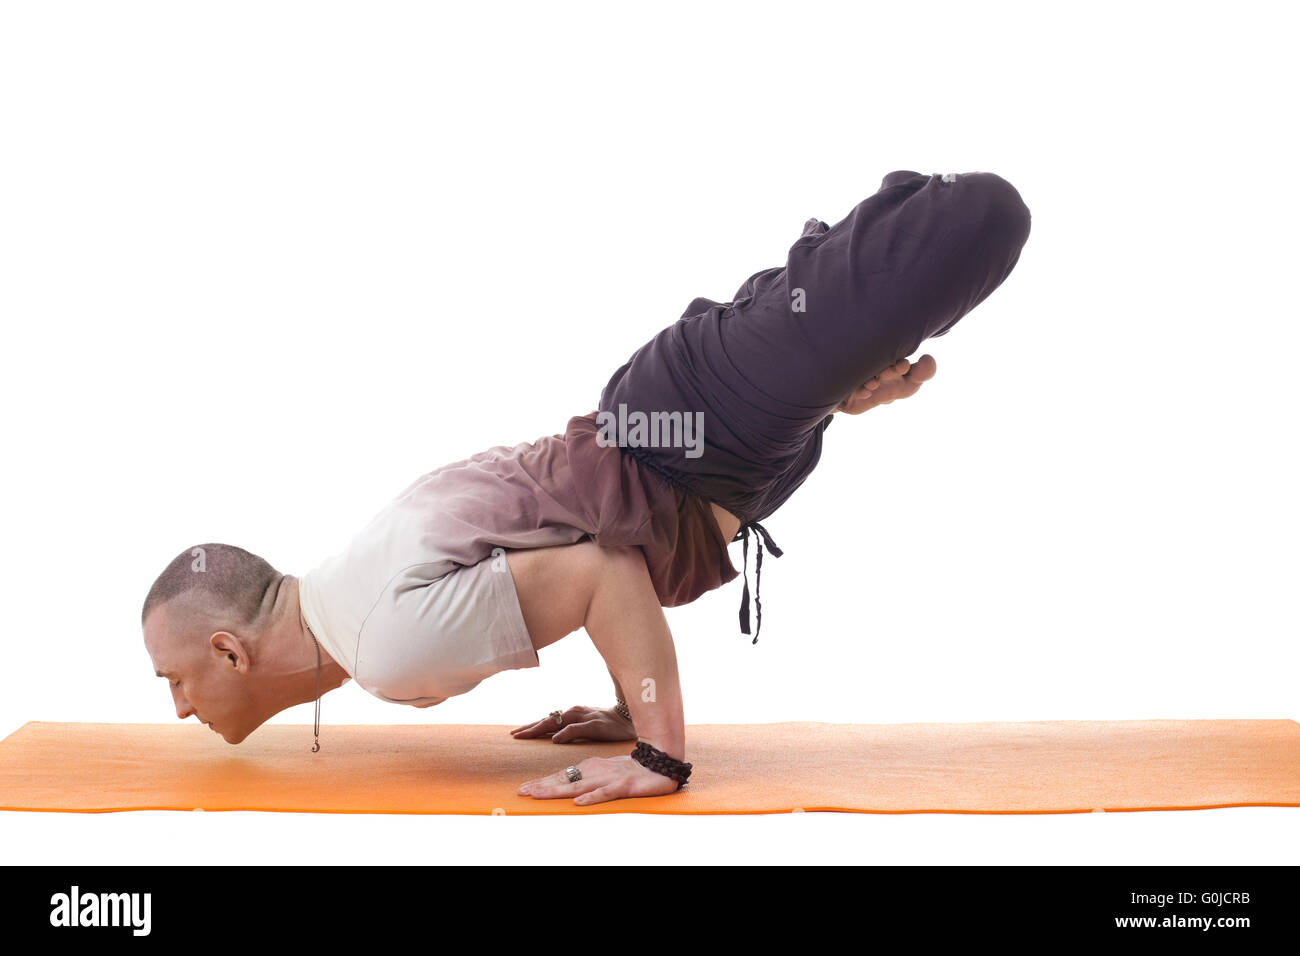 Focused Athletic Man Posing In Difficult Yoga Pose